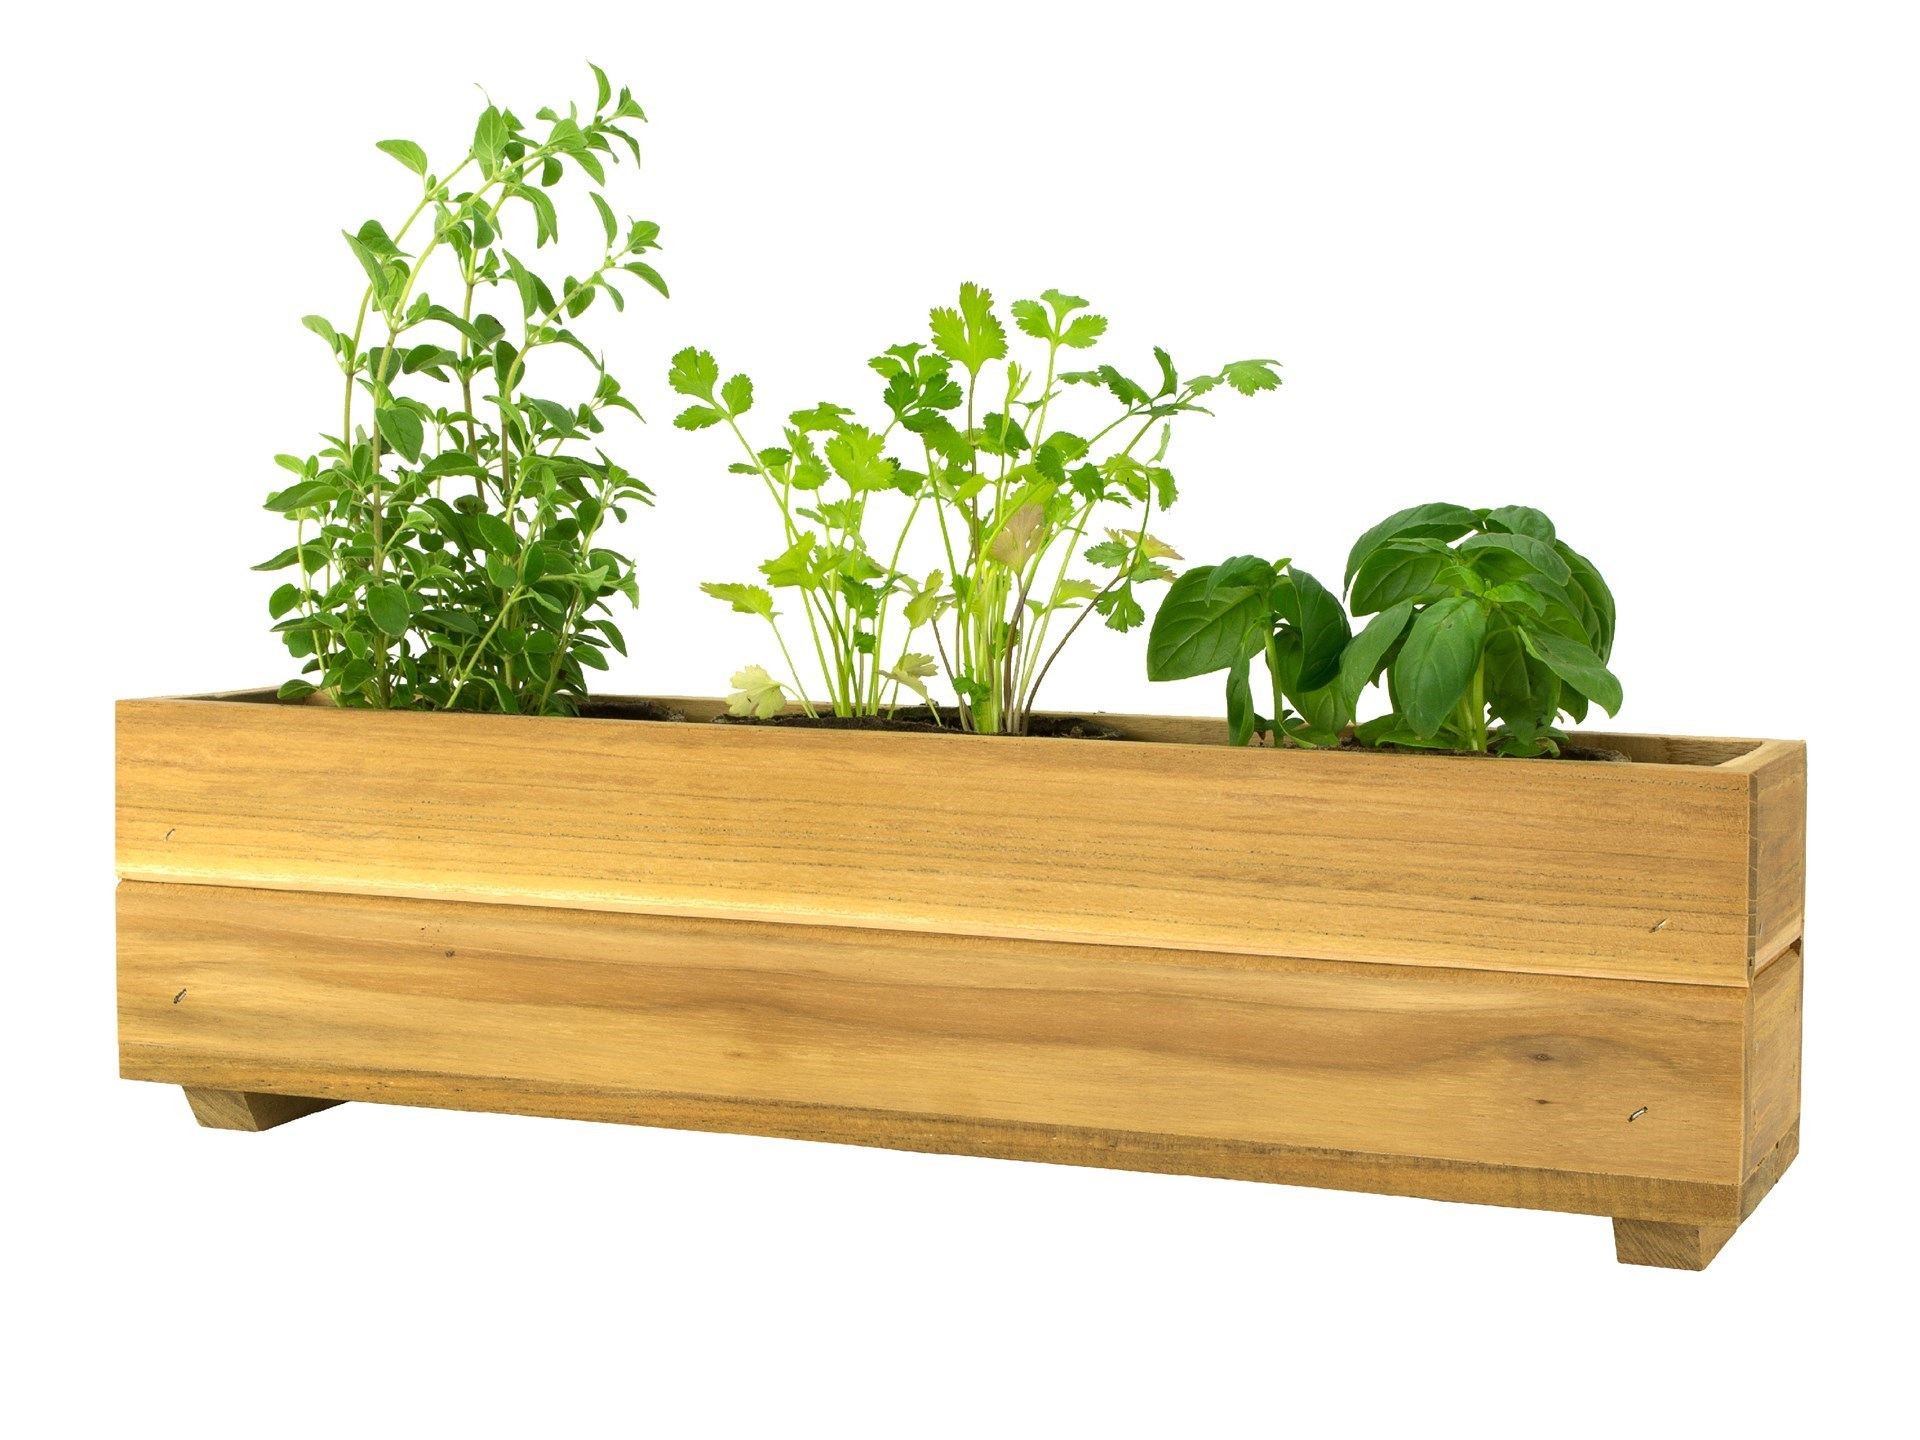 Herb Planter Teak Herb Planter Box  Attribute Variants  Teak Planter™